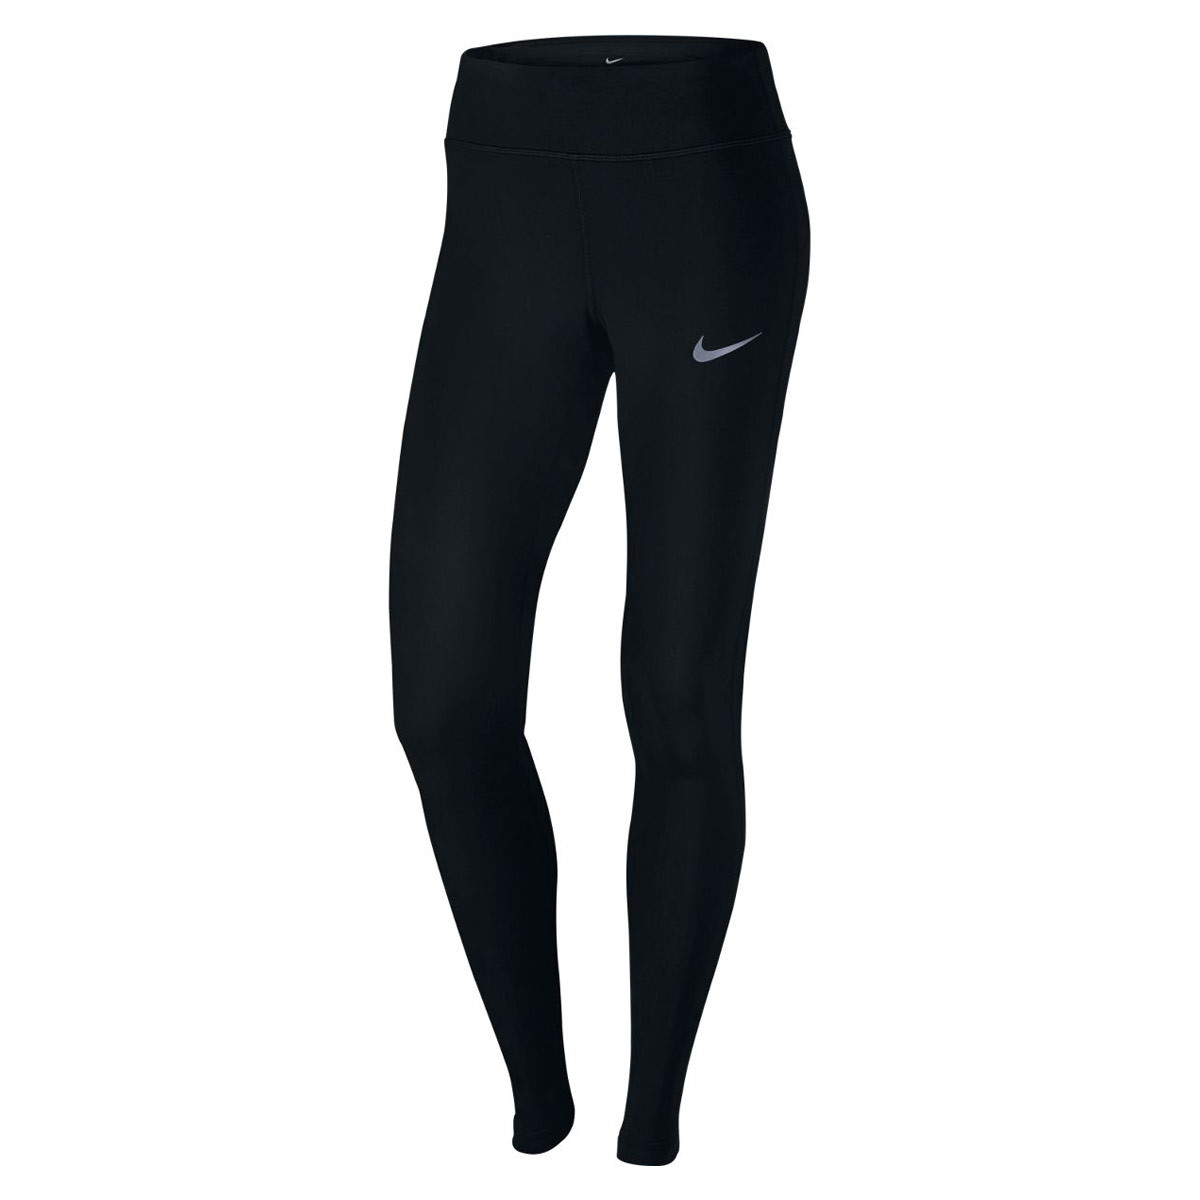 Nike Power Epic Lux Running Tights Pantalons course pour Femme Noir